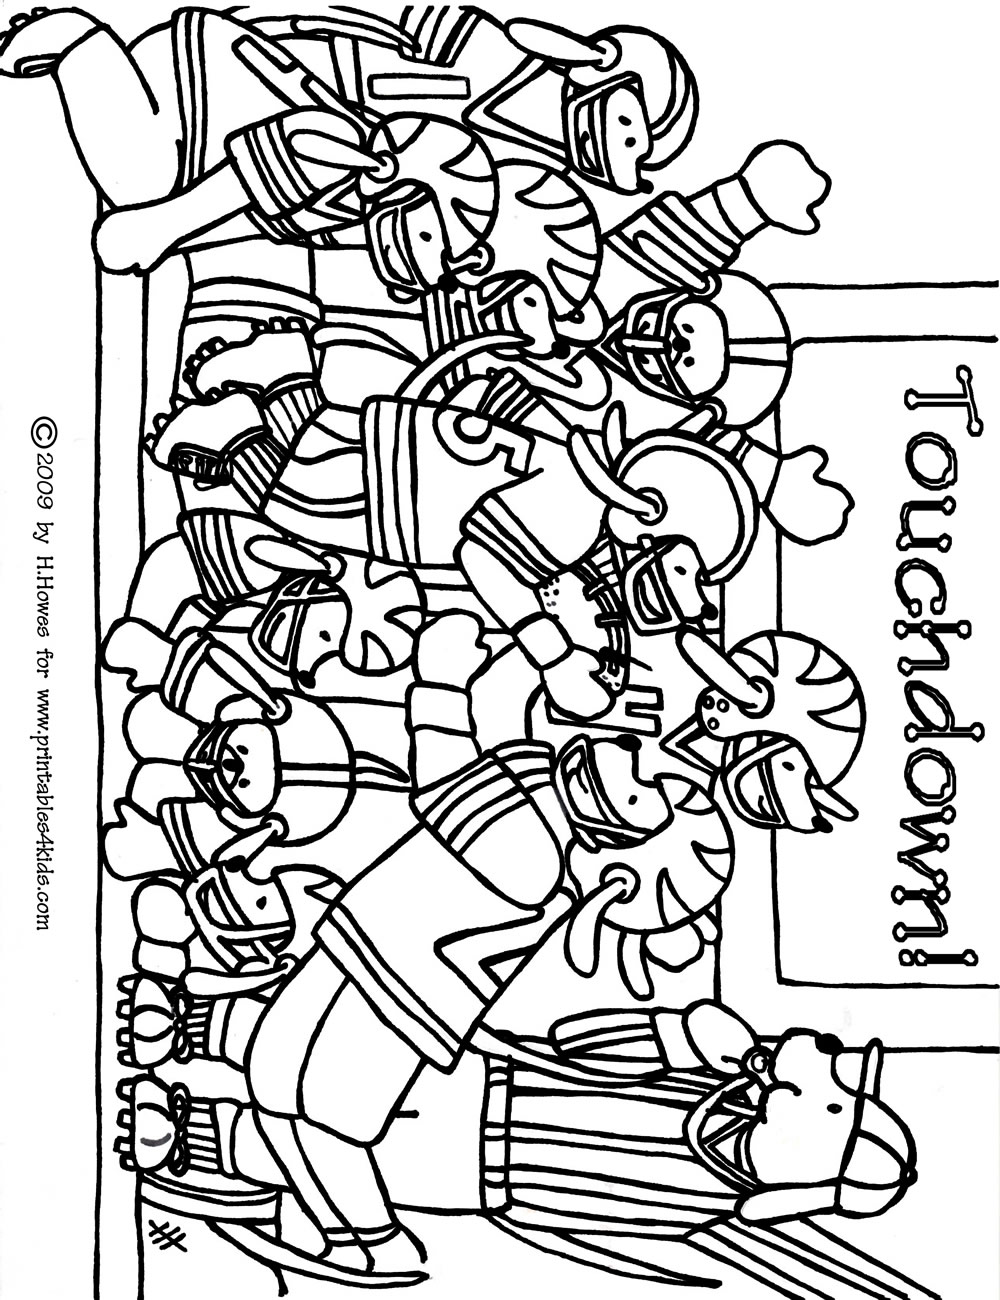 Football Game Coloring Page : Printables for Kids – free word ...